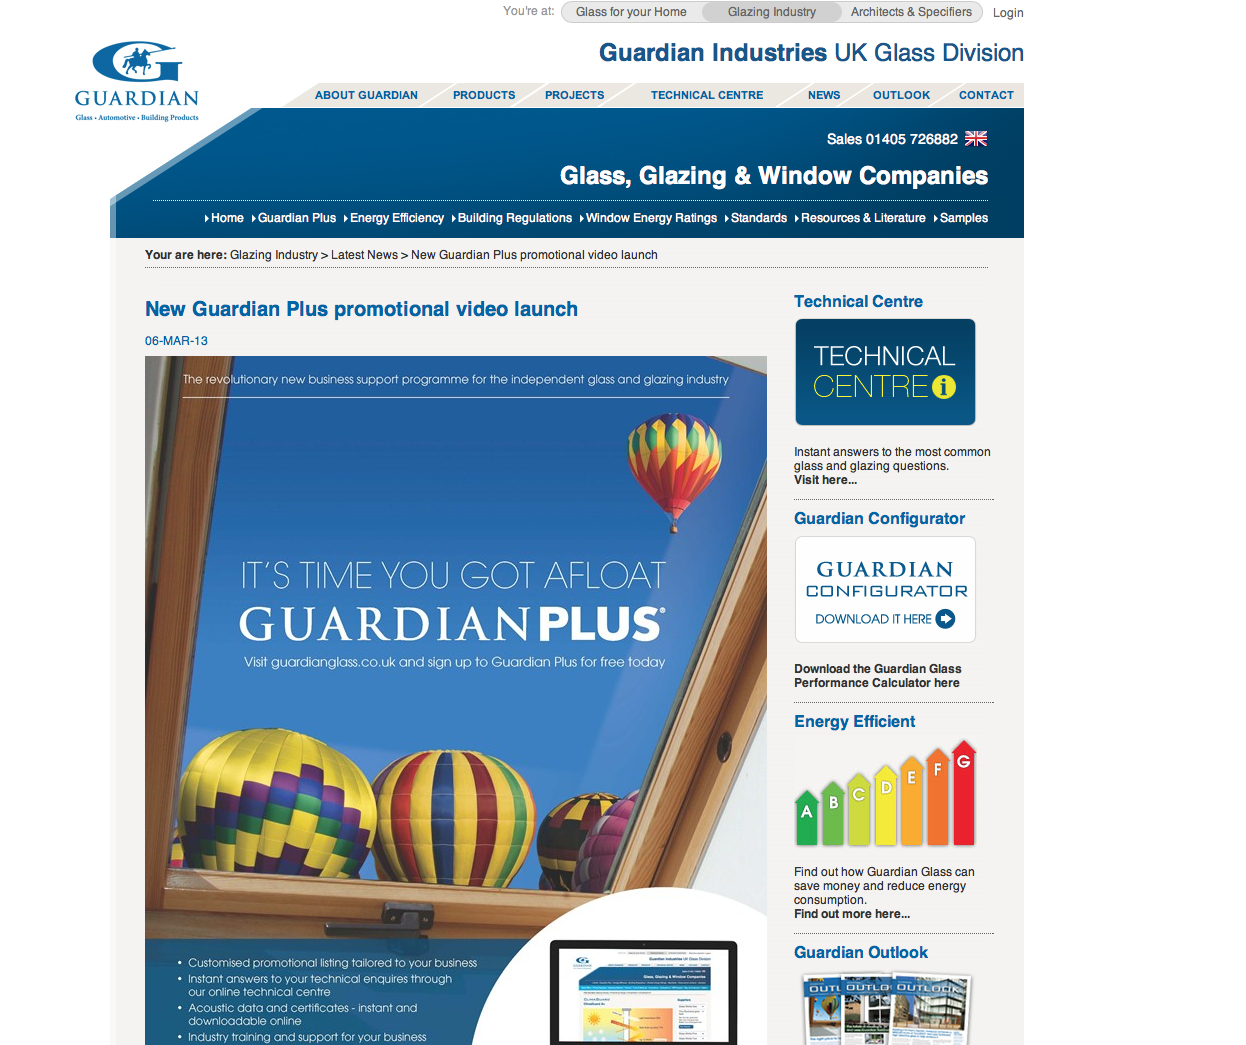 New Guardian Plus promotional video launch